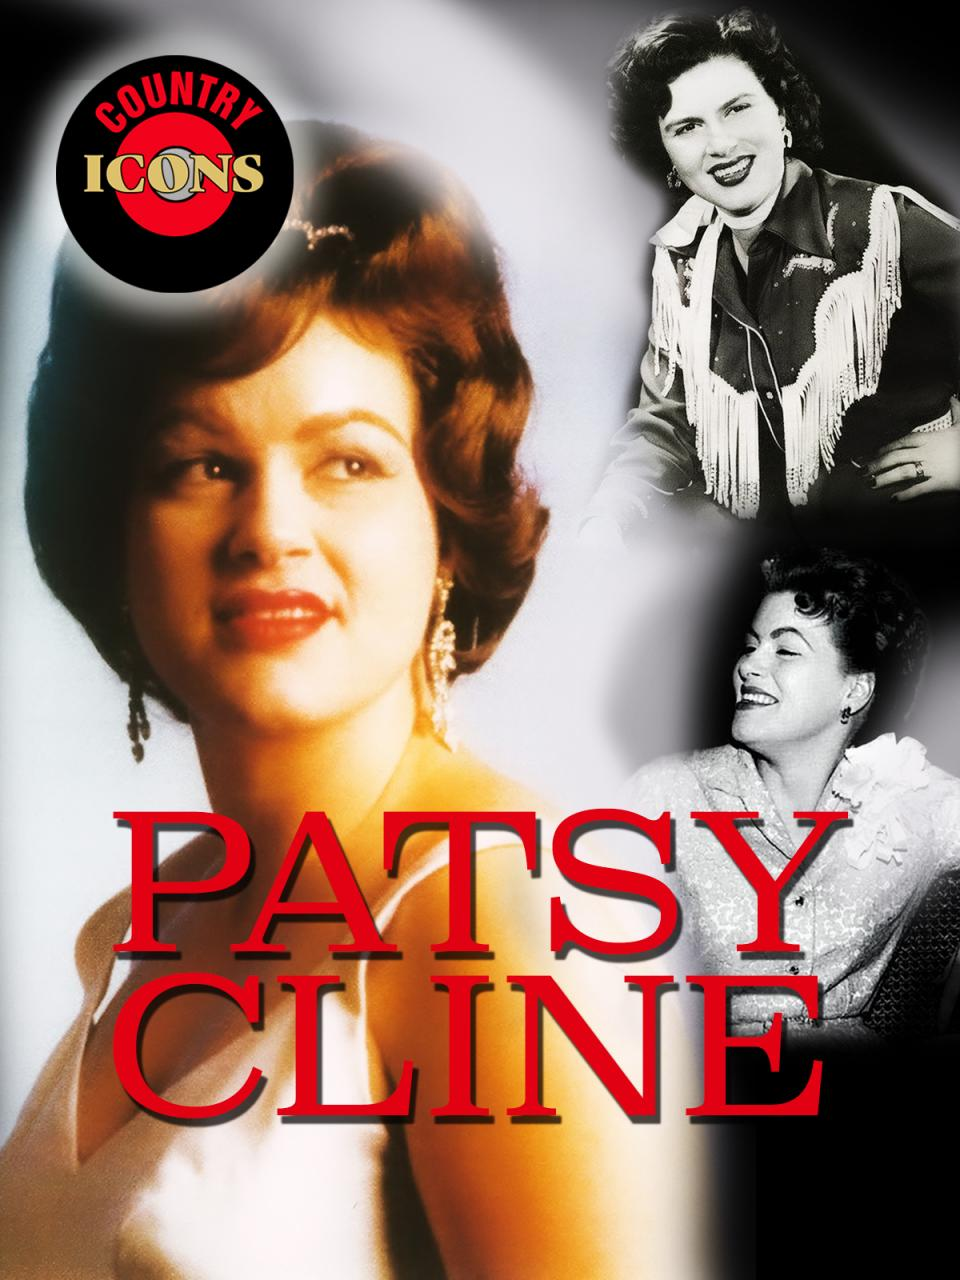 Country Icons: Patsy Kline